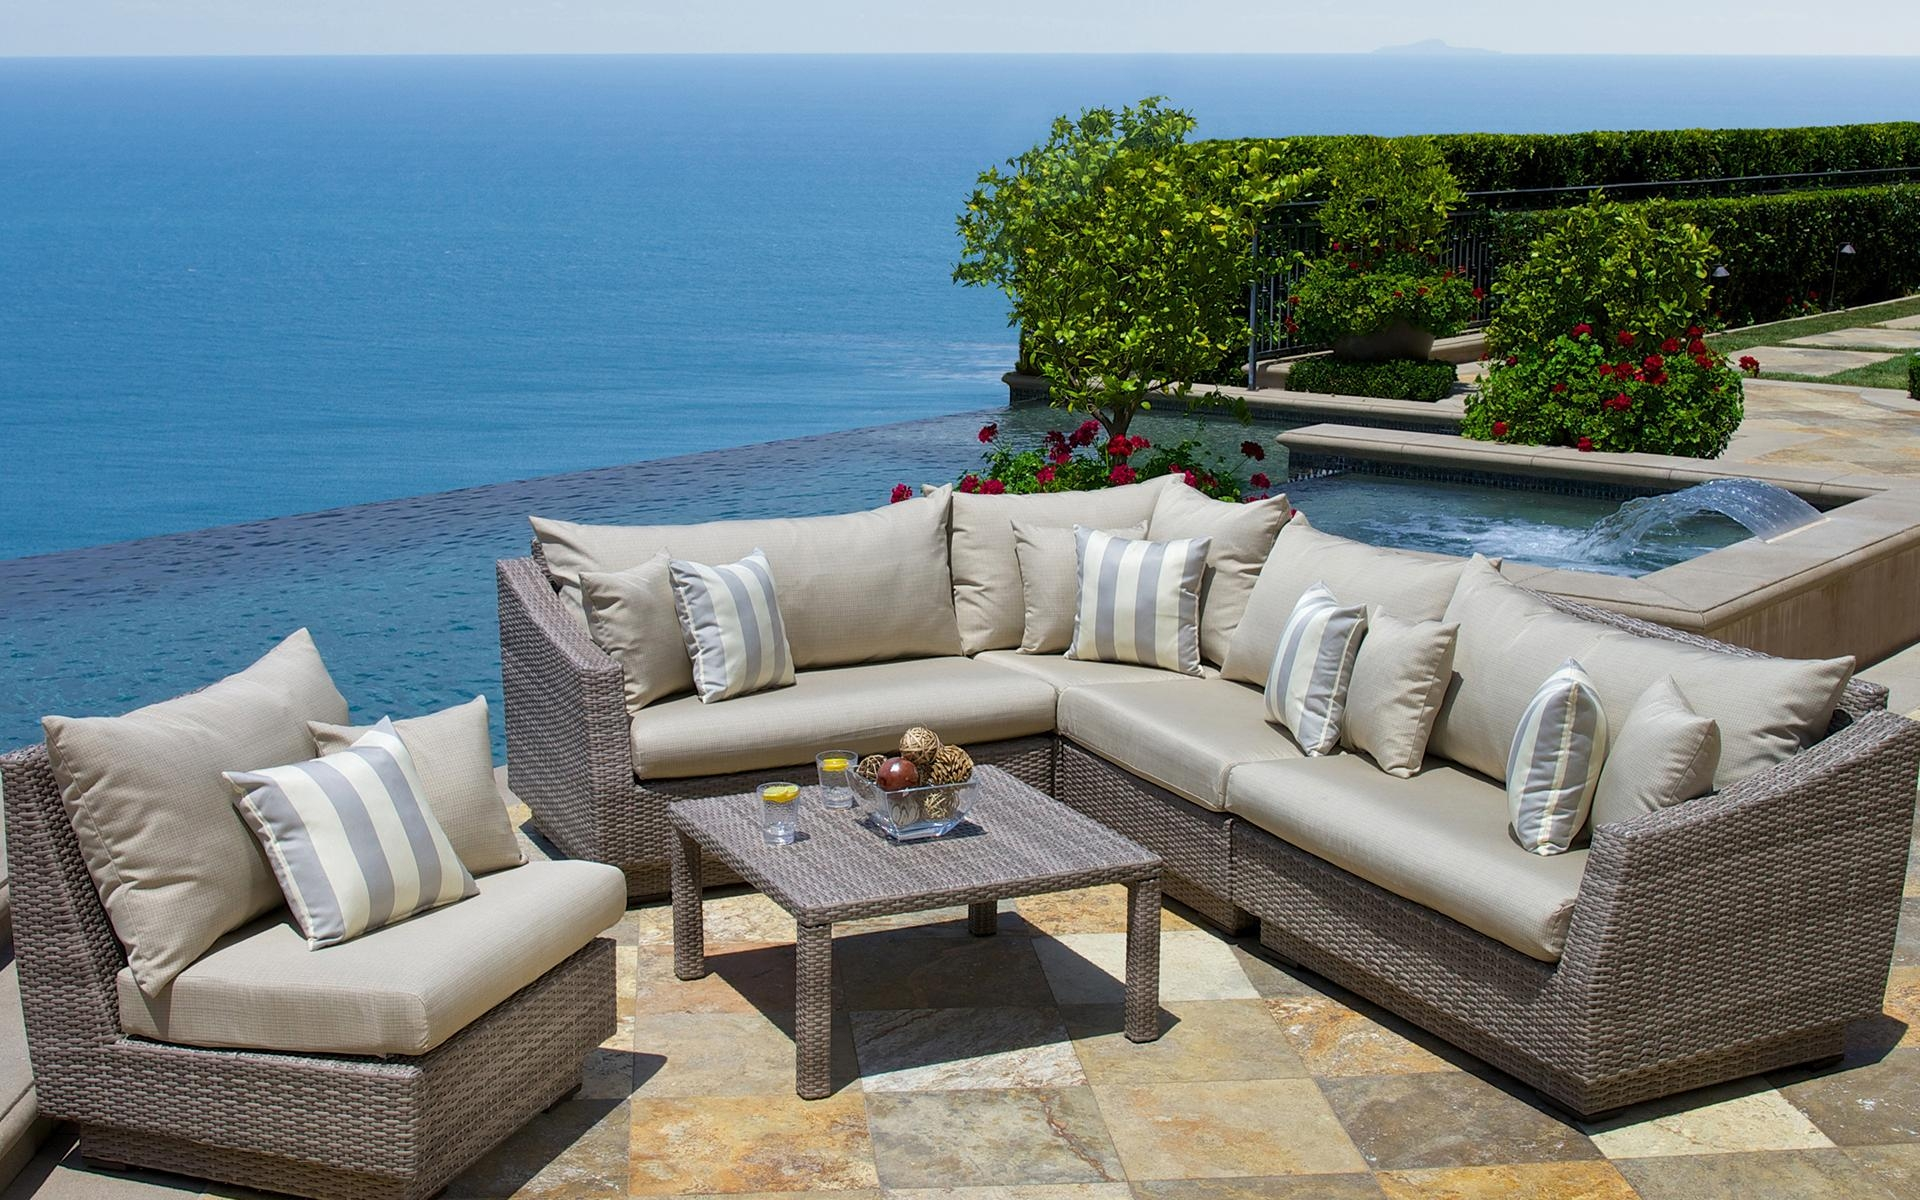 Home – The Outdoor Furniture Outlet Pertaining To Sofa Orange County (Image 6 of 20)